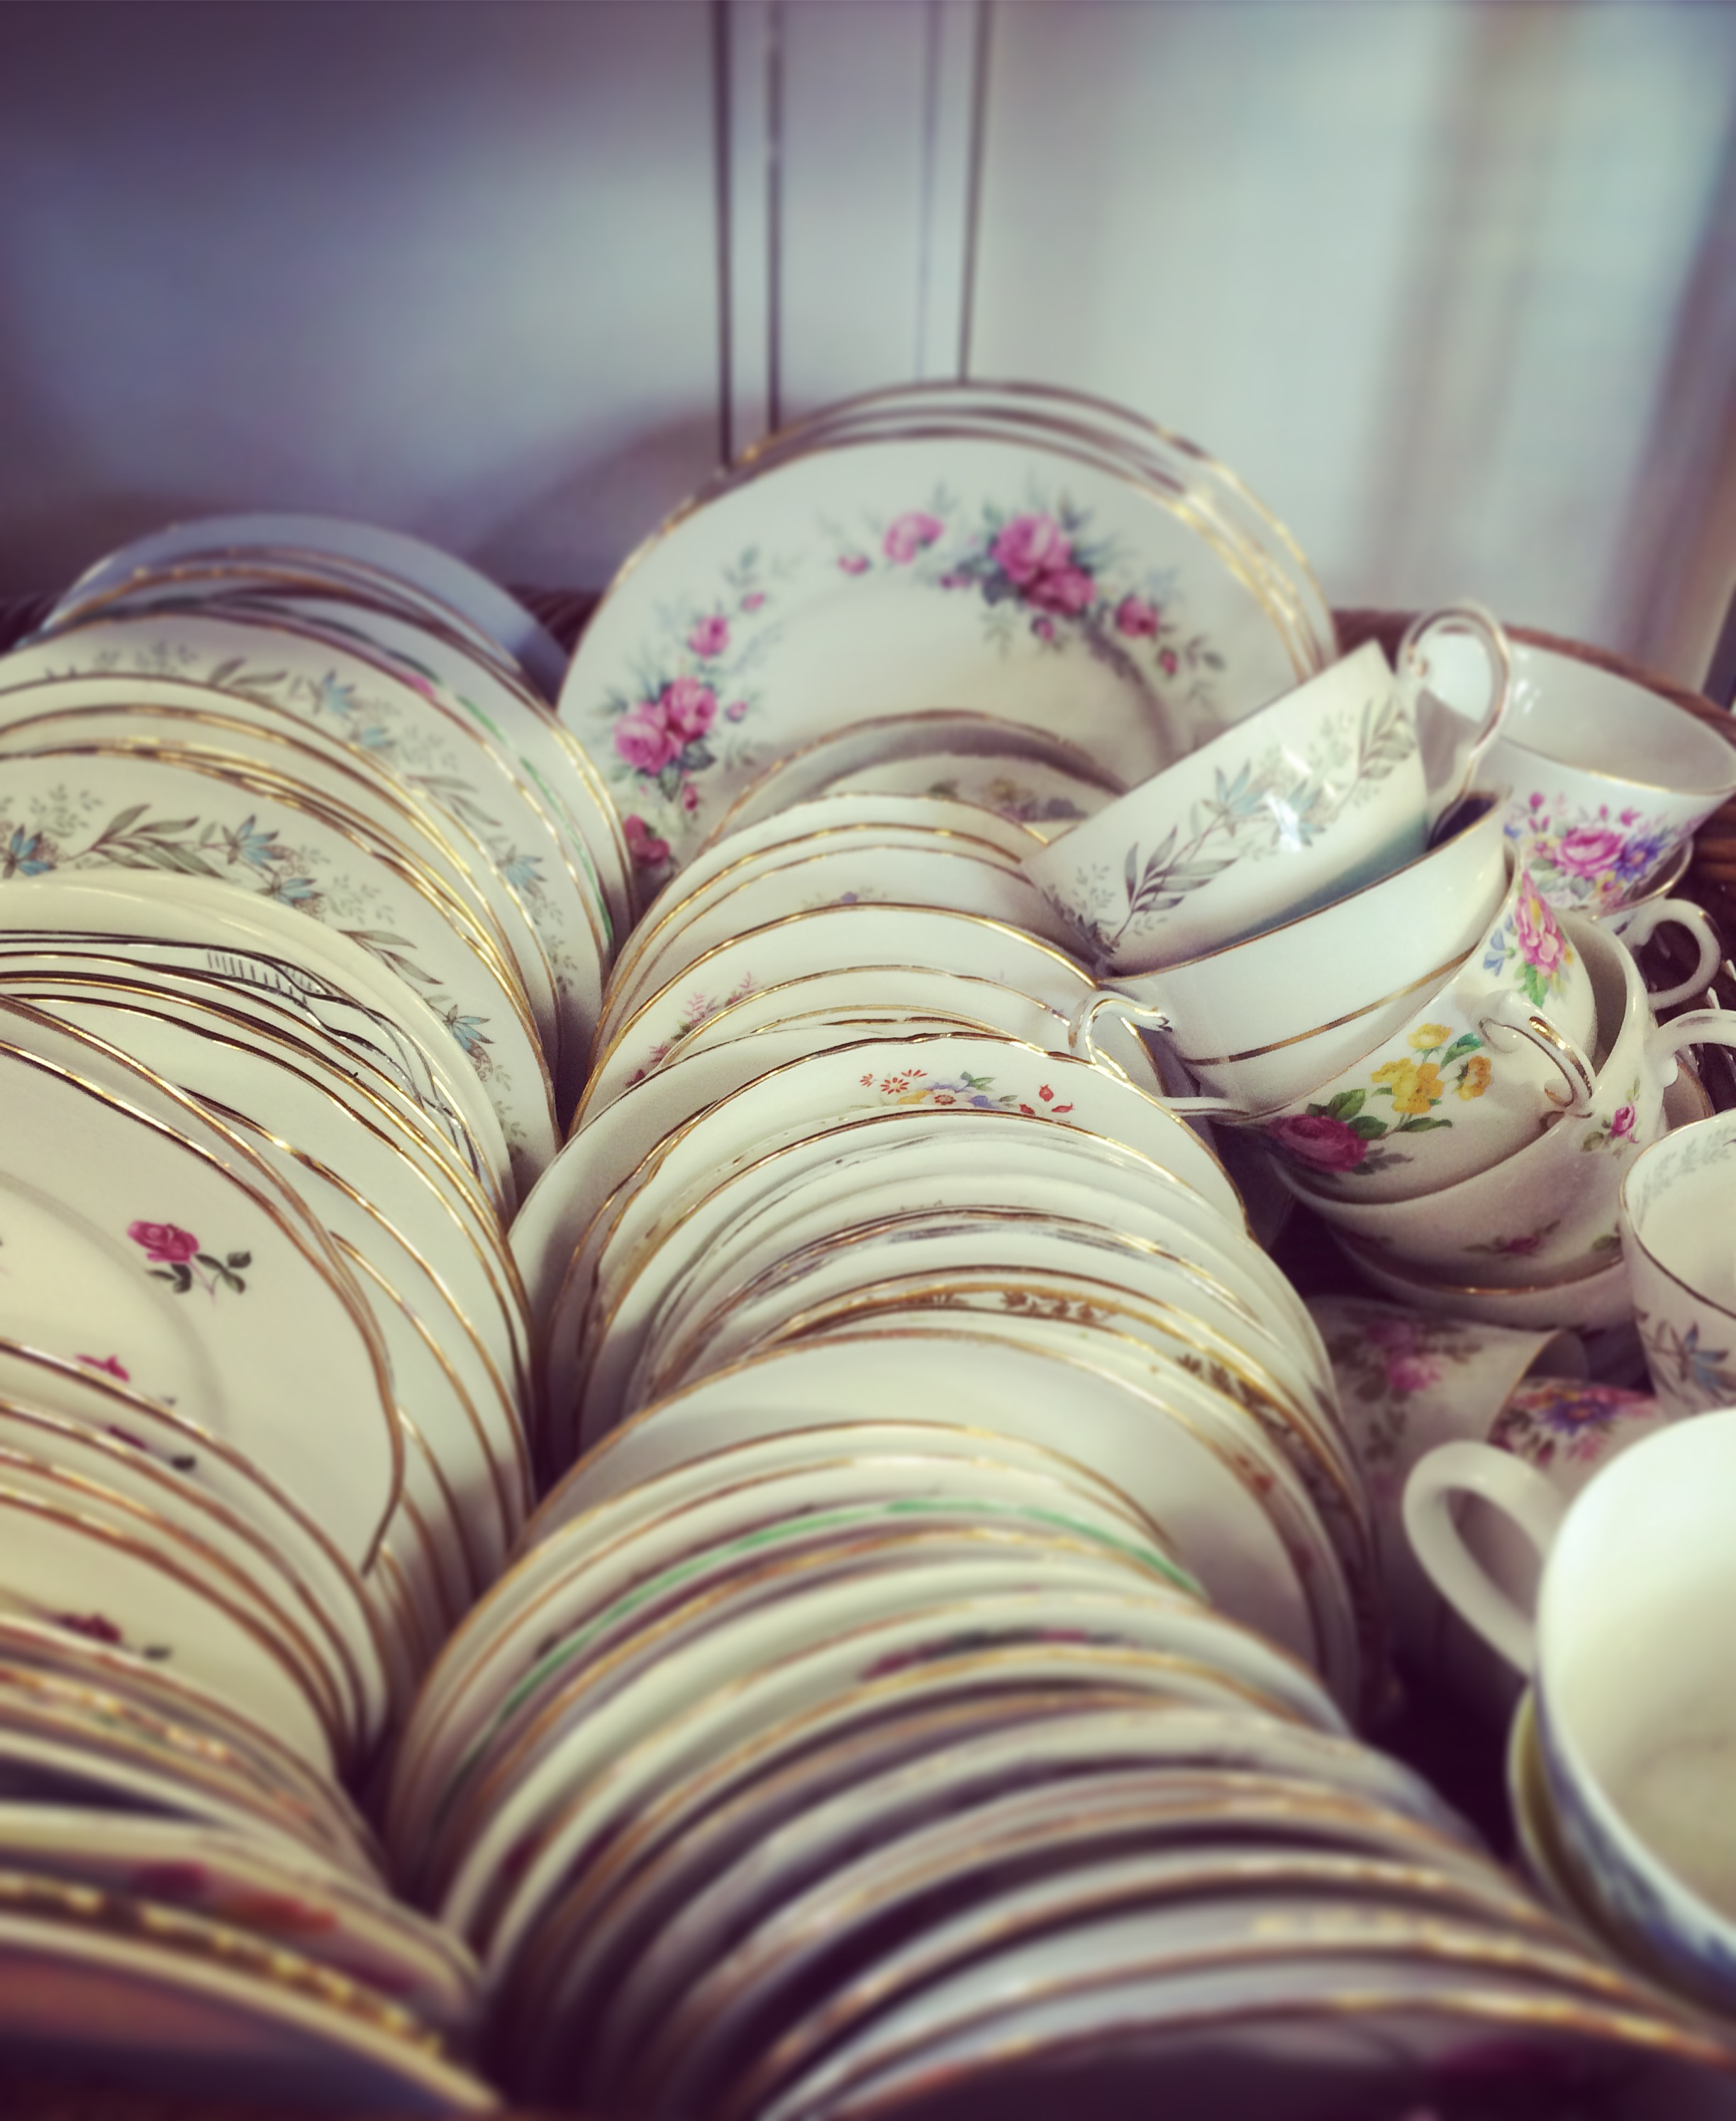 vintage cups and plates.jpg